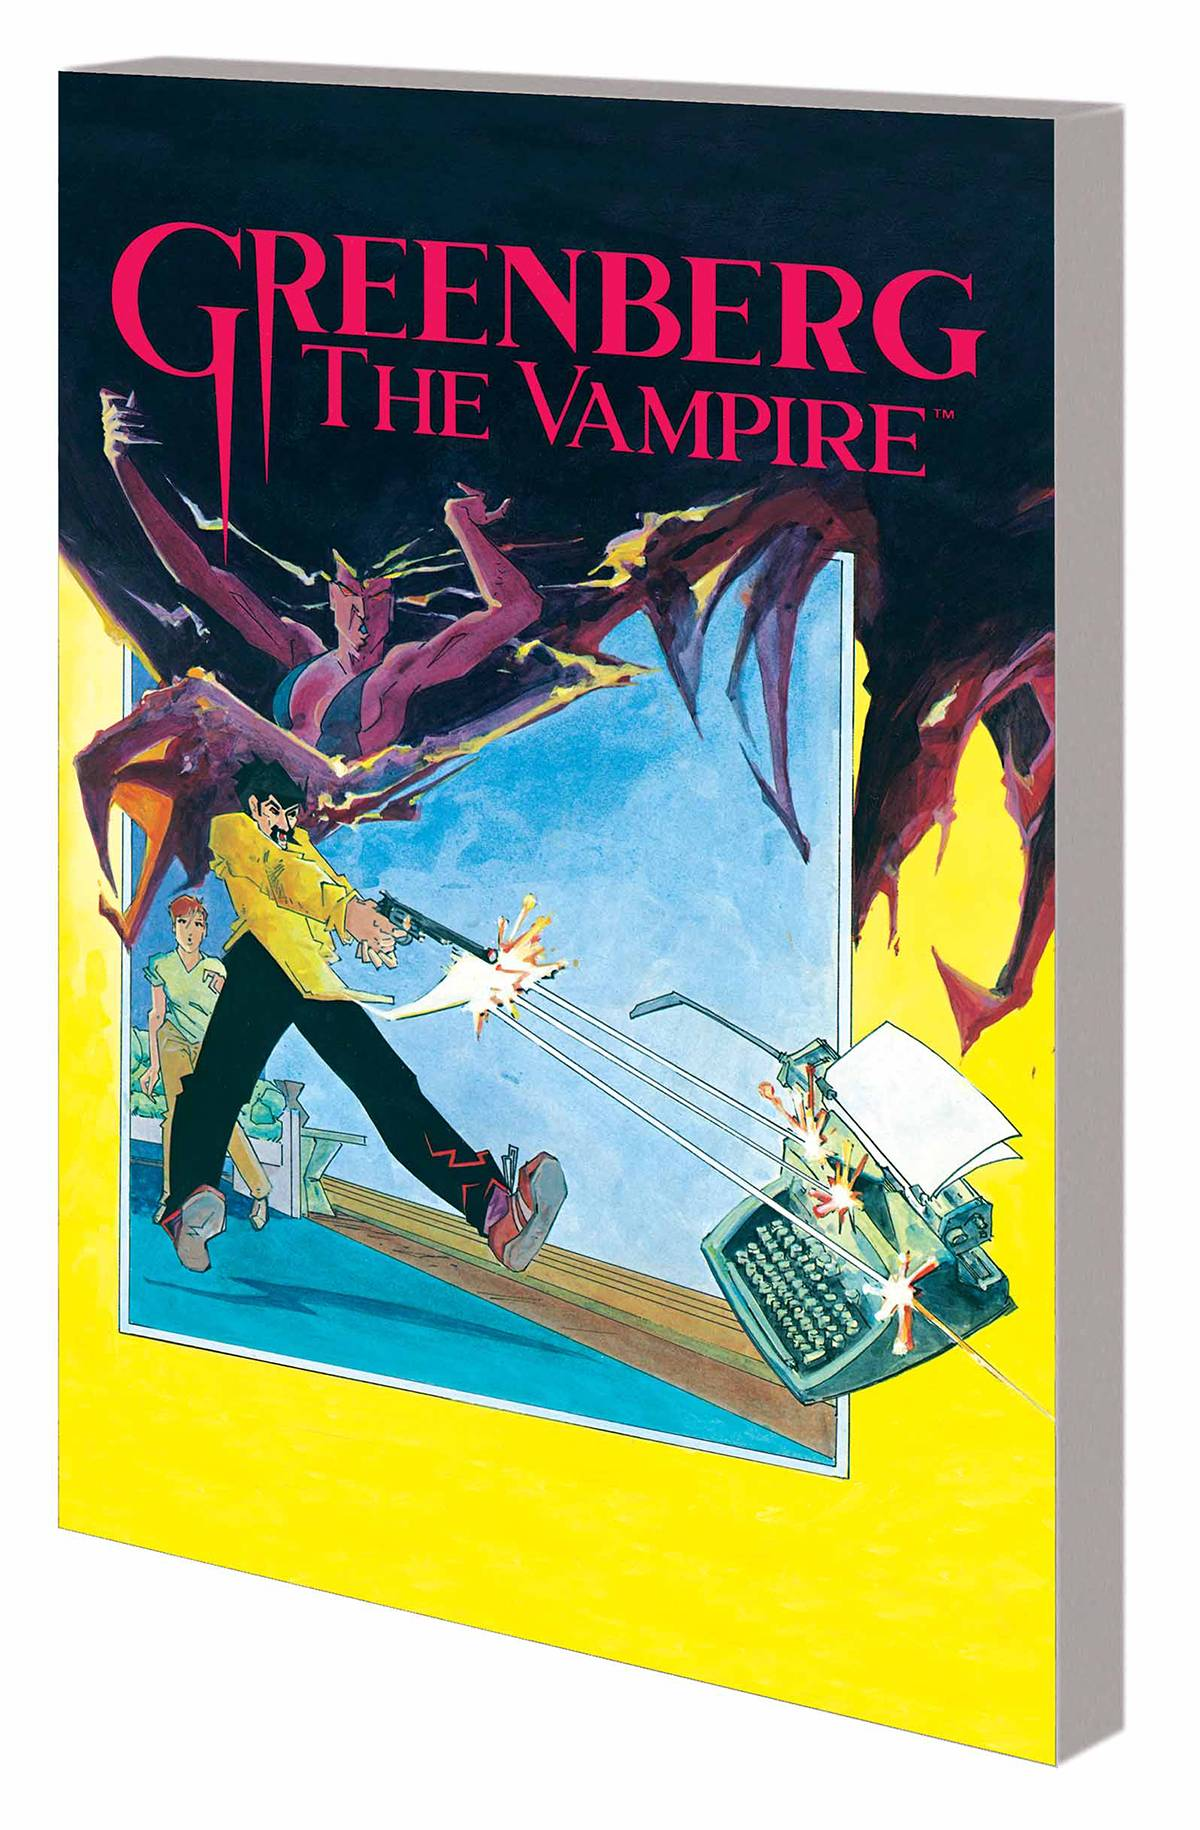 Greenberg The Vampire (Marvel Graphic Novel ; No. 20)